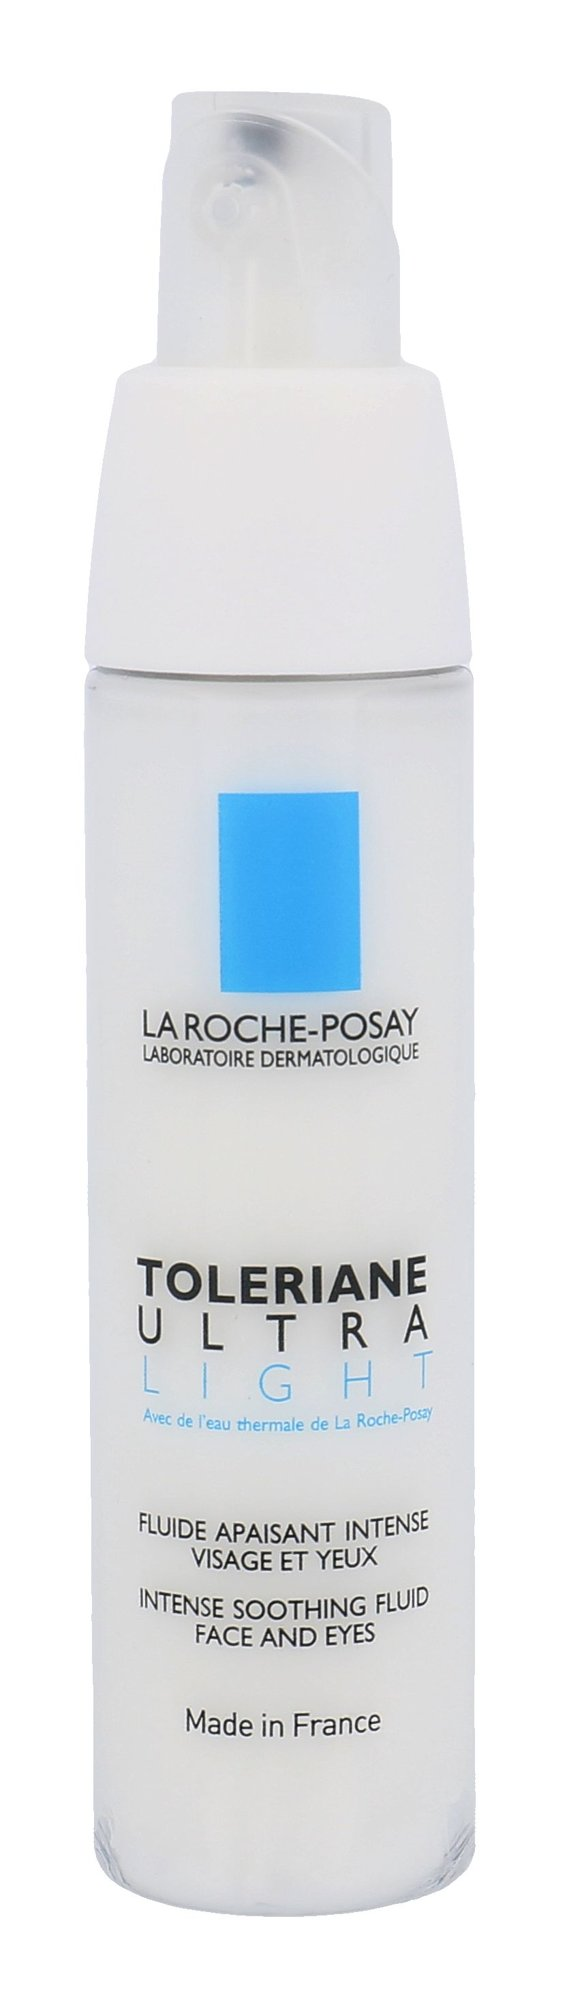 La Roche-Posay Toleriane Ultra Light Intense Soothing Fluid Cosmetic 40ml